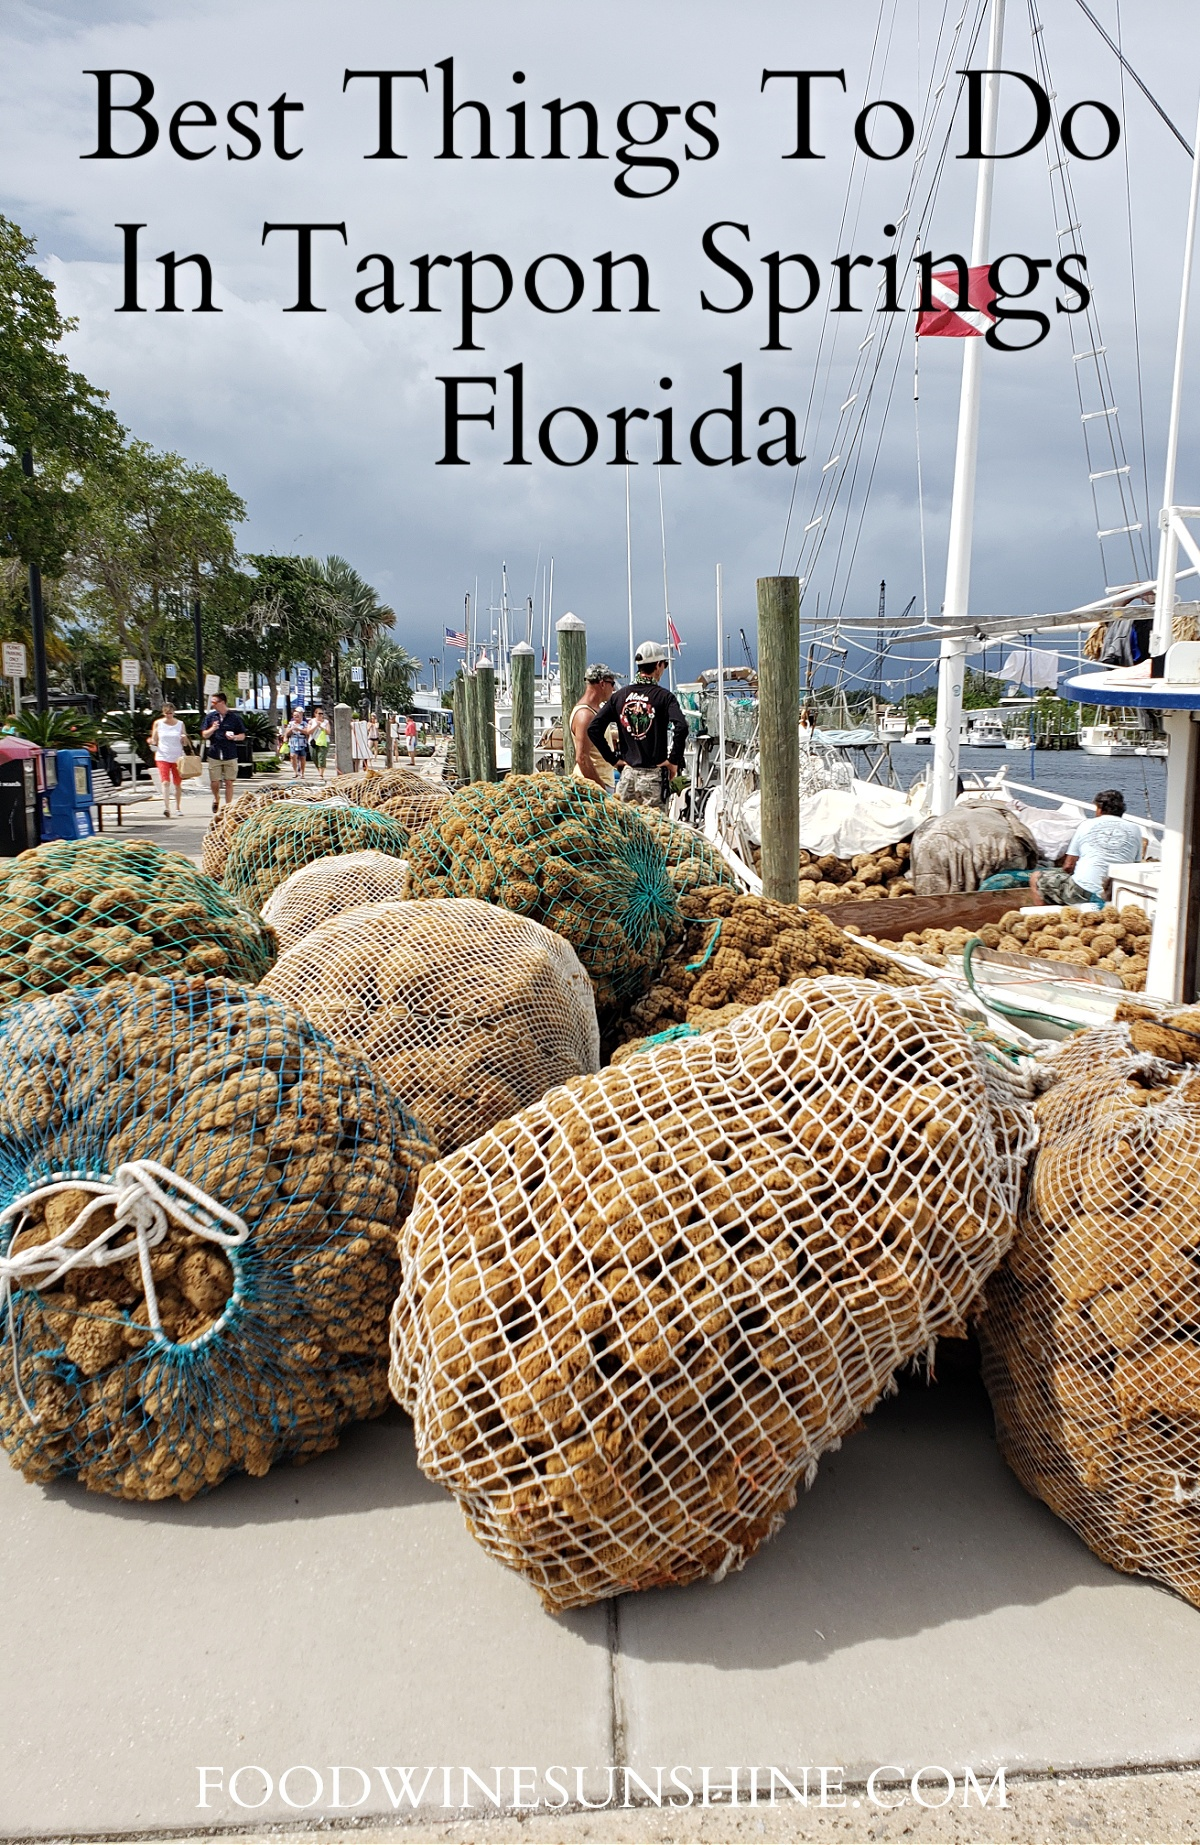 What are the best Things To Do In Tarpon Springs